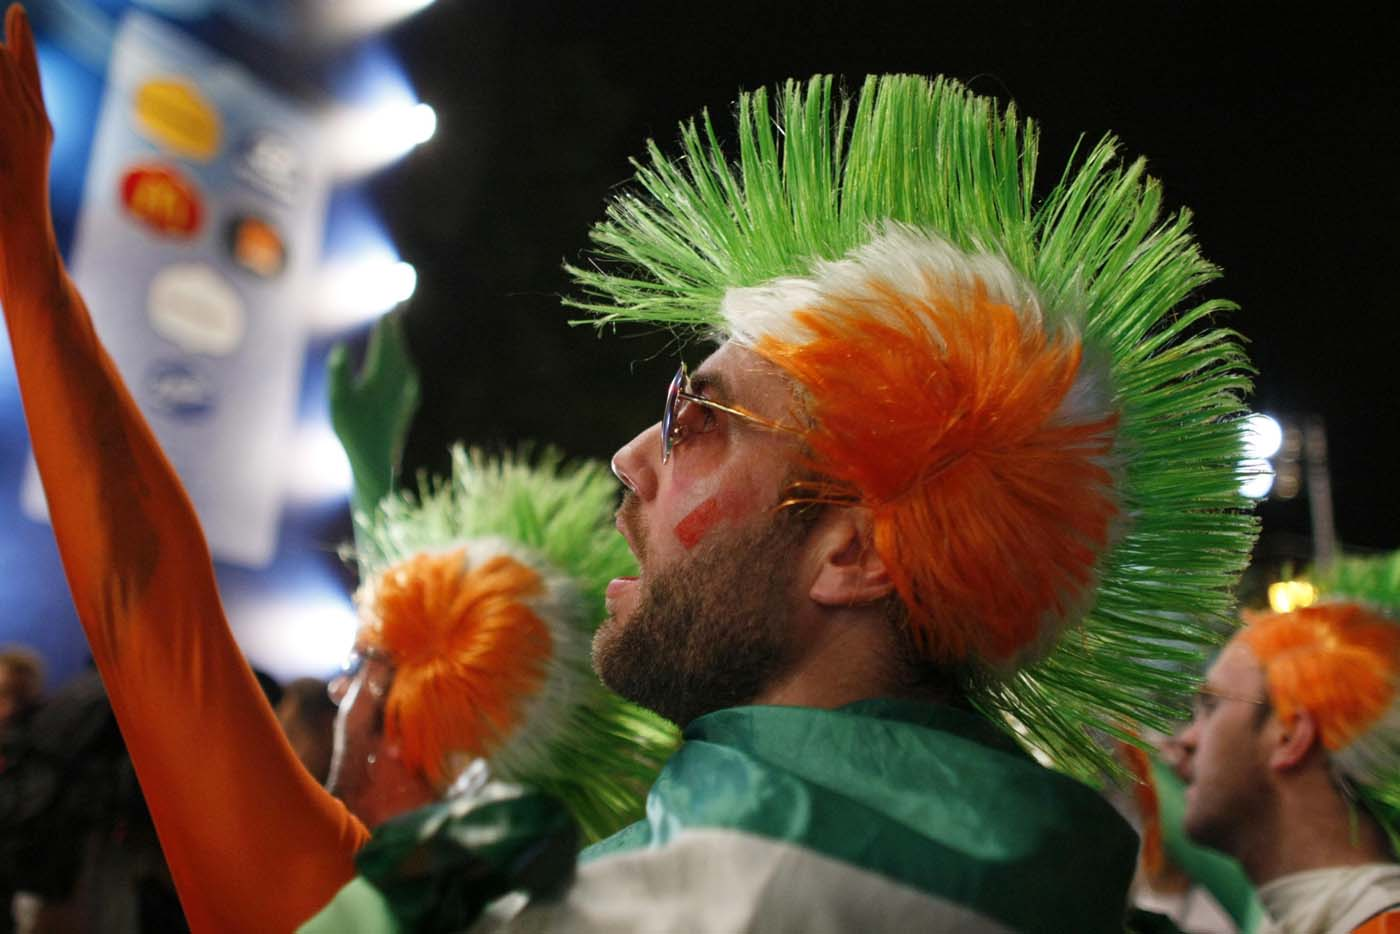 An Irish supporter reacts as he watches the Euro 2012 soccer match between Italy and Ireland at a fan zone in Poznan June 18, 2012. (Kacper Pempel/Reuters)